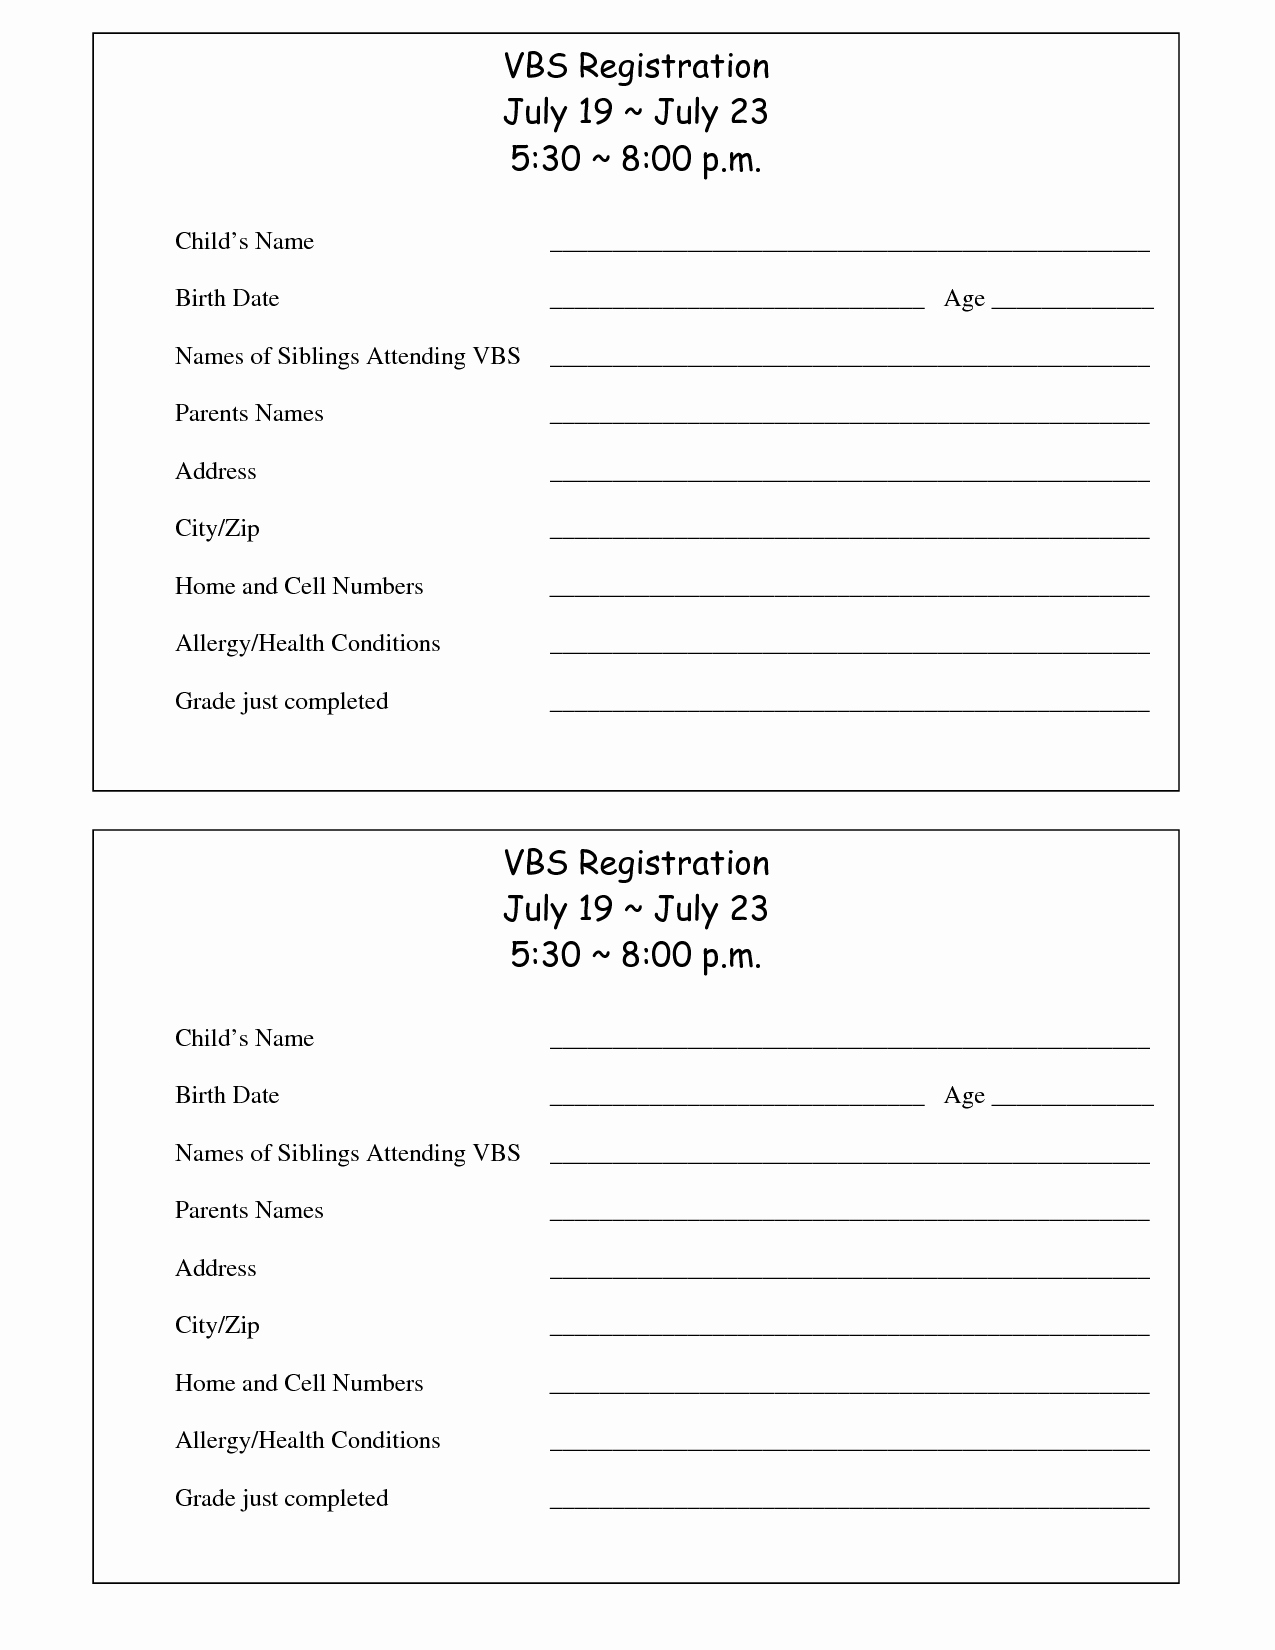 School Registration form Template New Printable Vbs Registration form Template